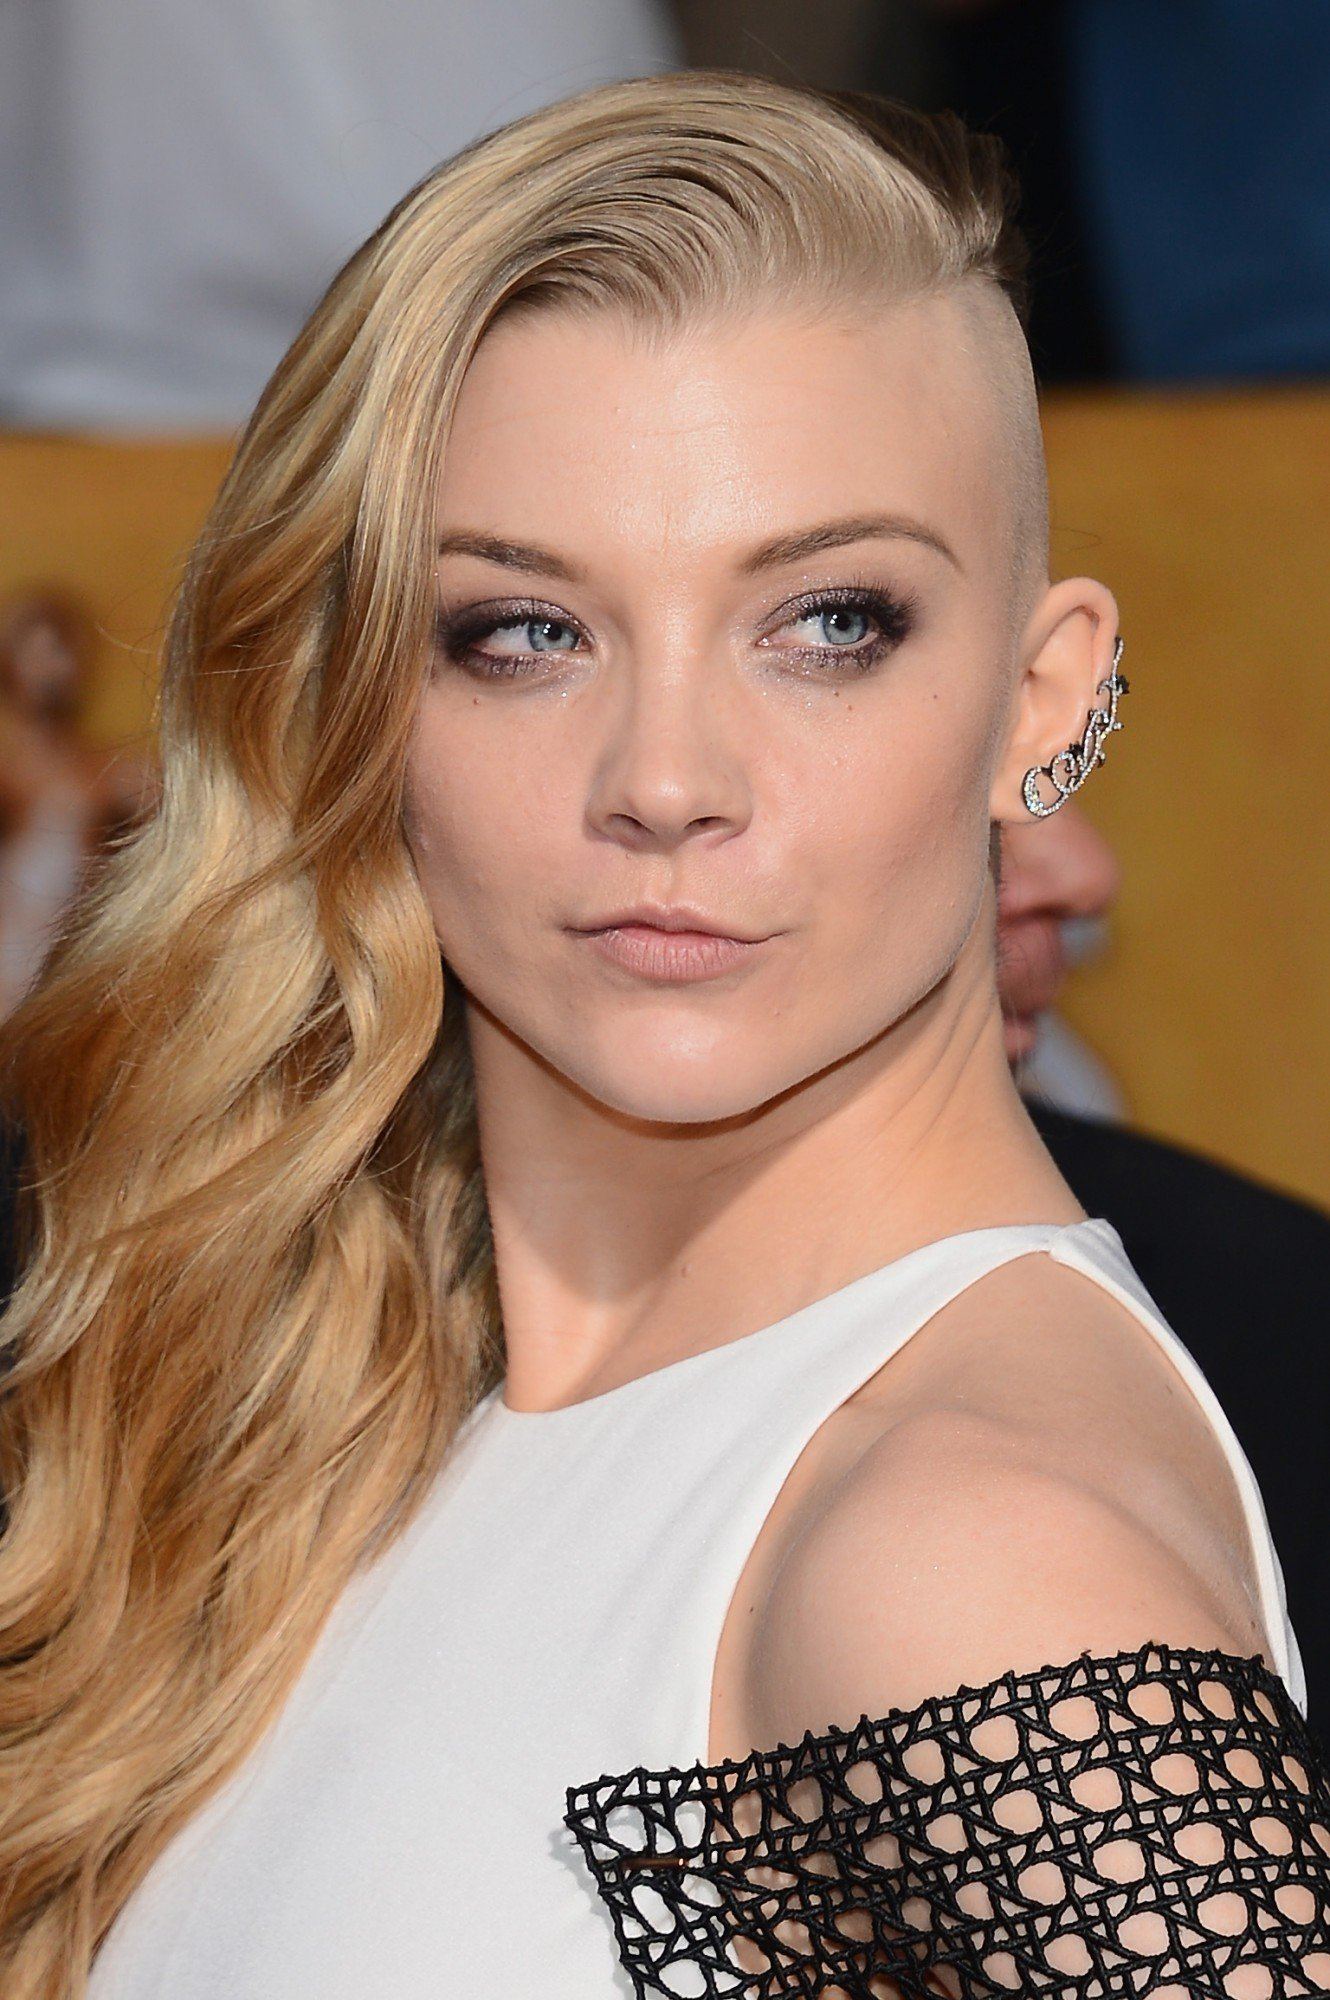 LOS ANGELES, CA - JANUARY 18: Actress Natalie Dormer attends the 20th Annual Screen Actors Guild Awards at The Shrine Auditorium on January 18, 2014 in Los Angeles, California. (Photo by Ethan Miller/Getty Images)